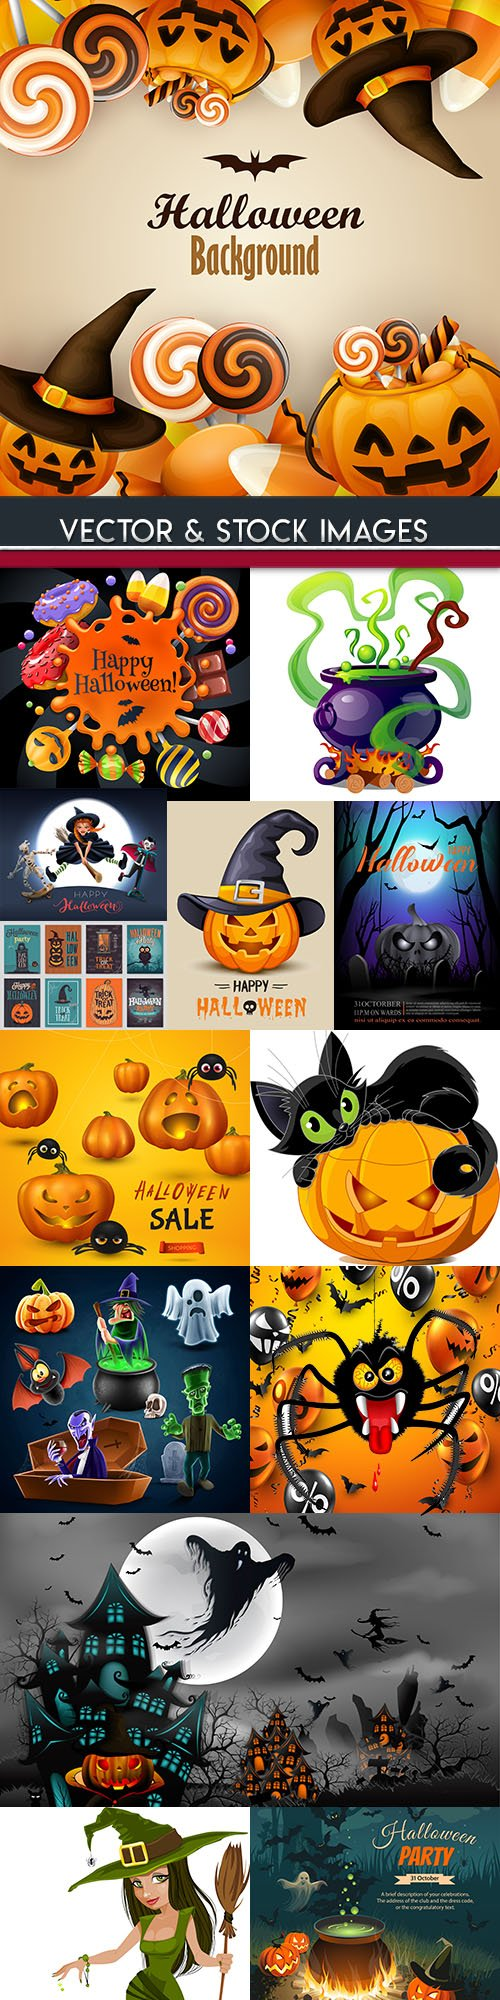 Happy Halloween holiday illustration collection 37